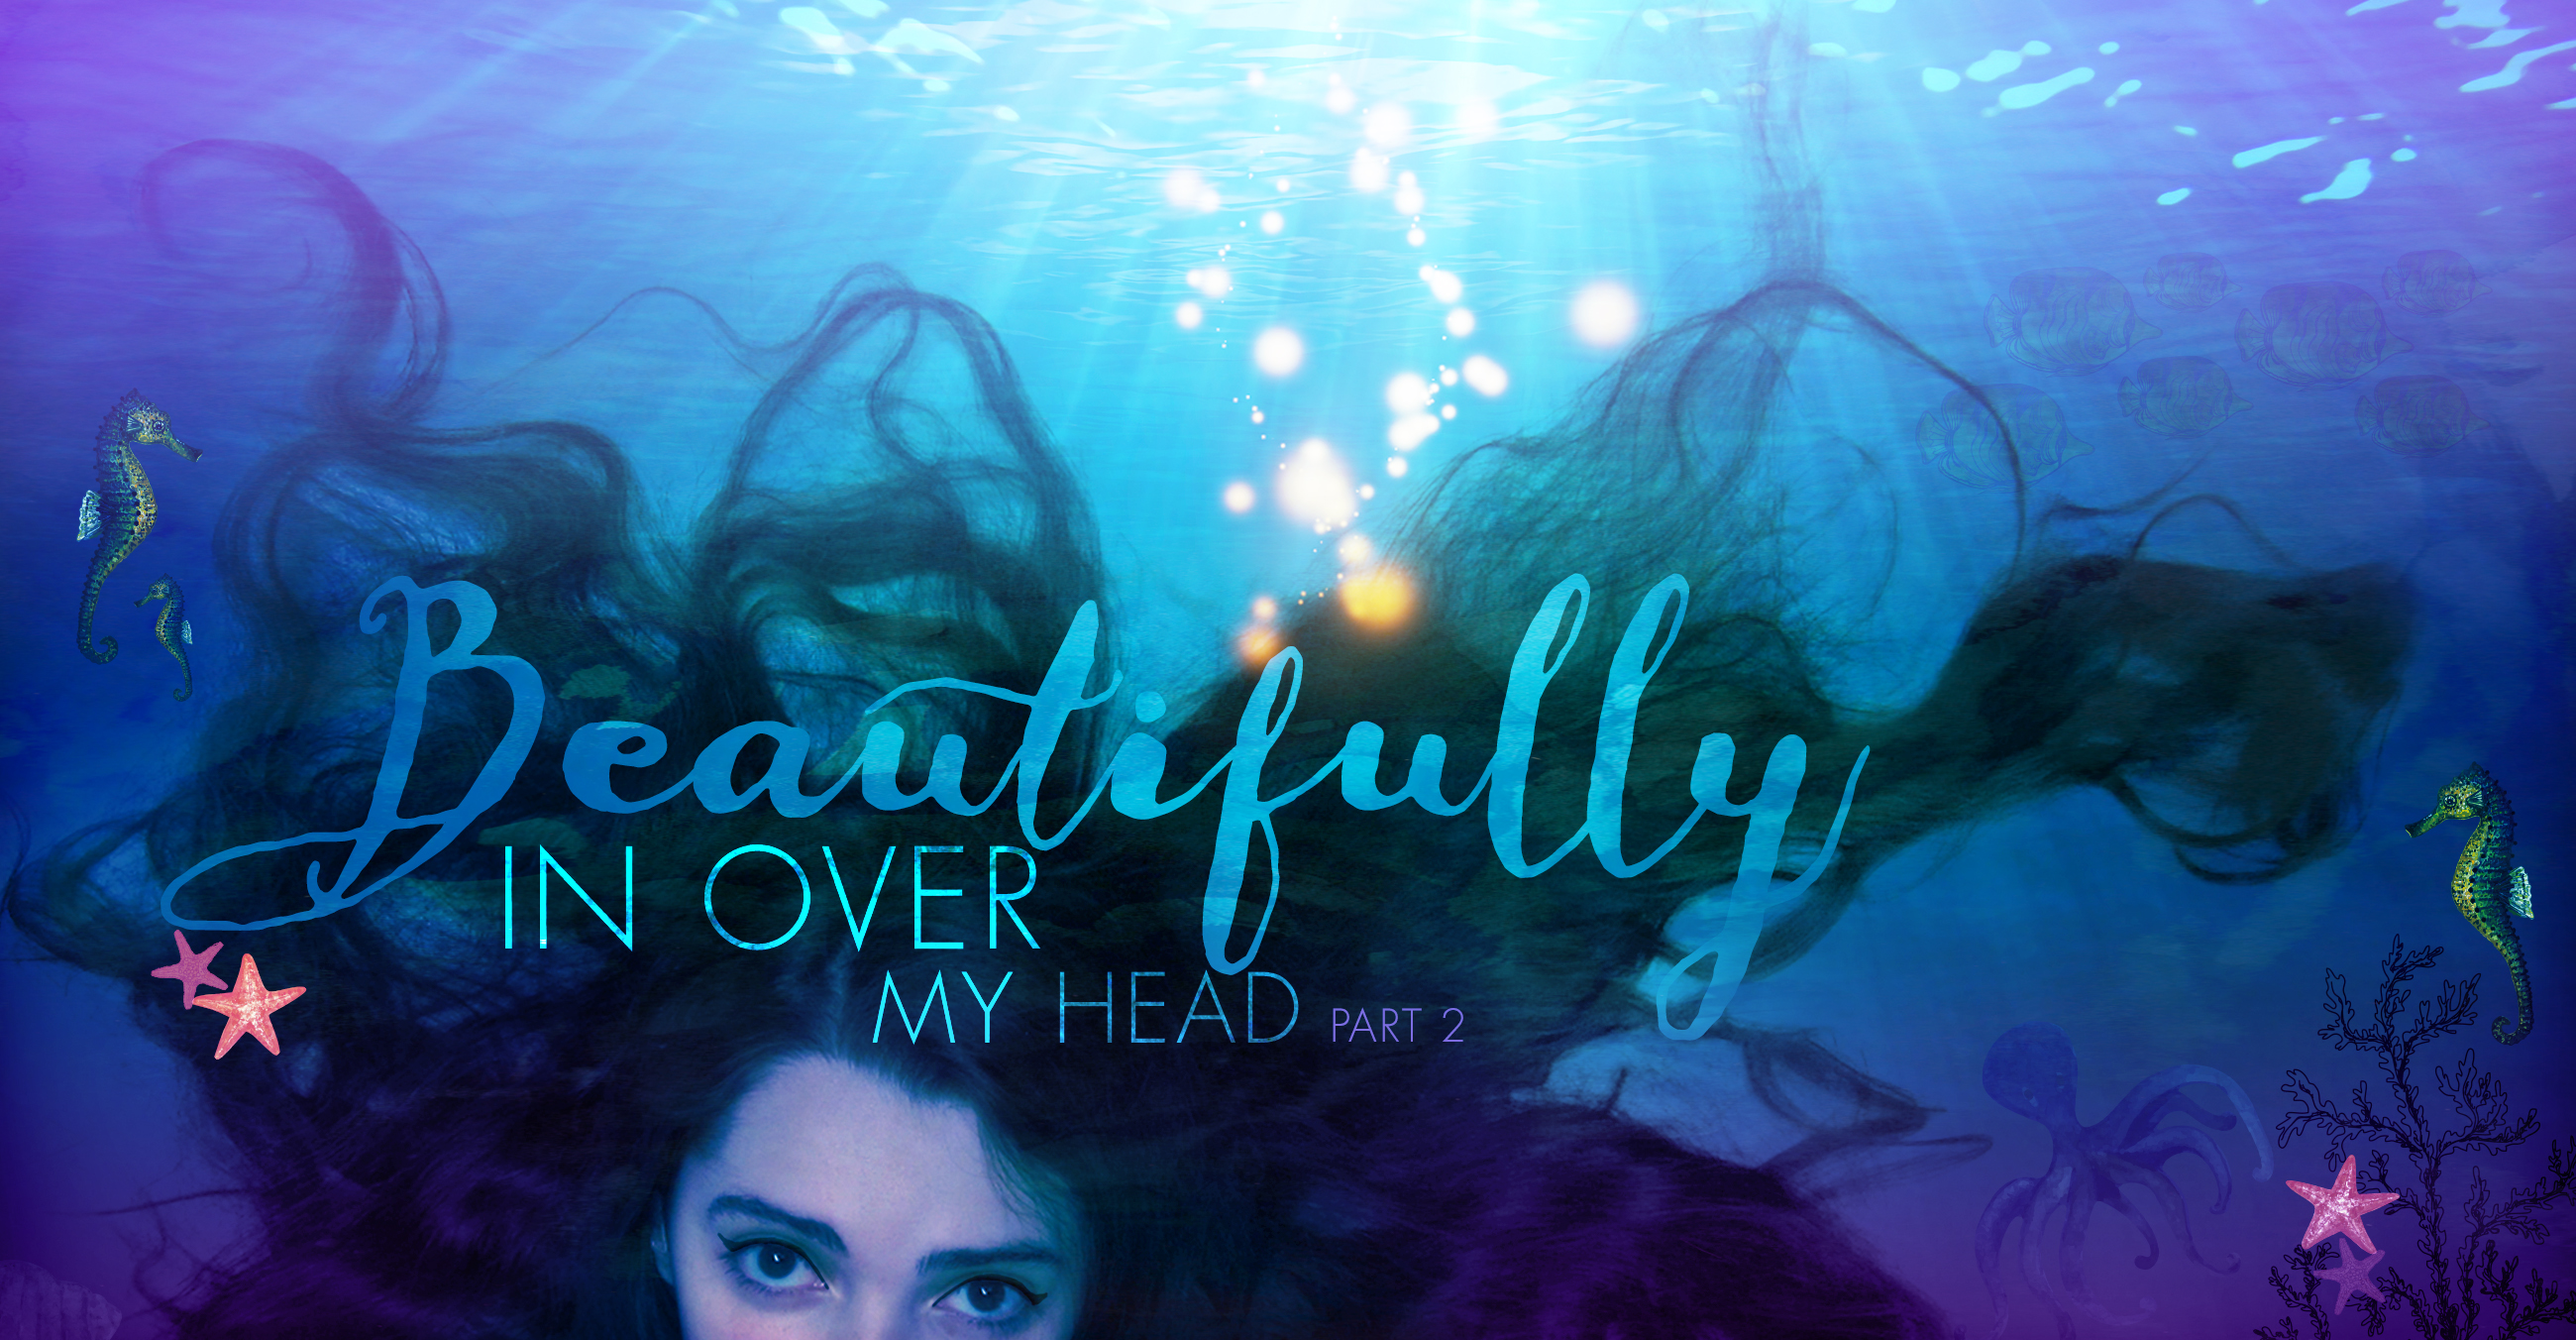 Beautifully in Over my Head Part 2